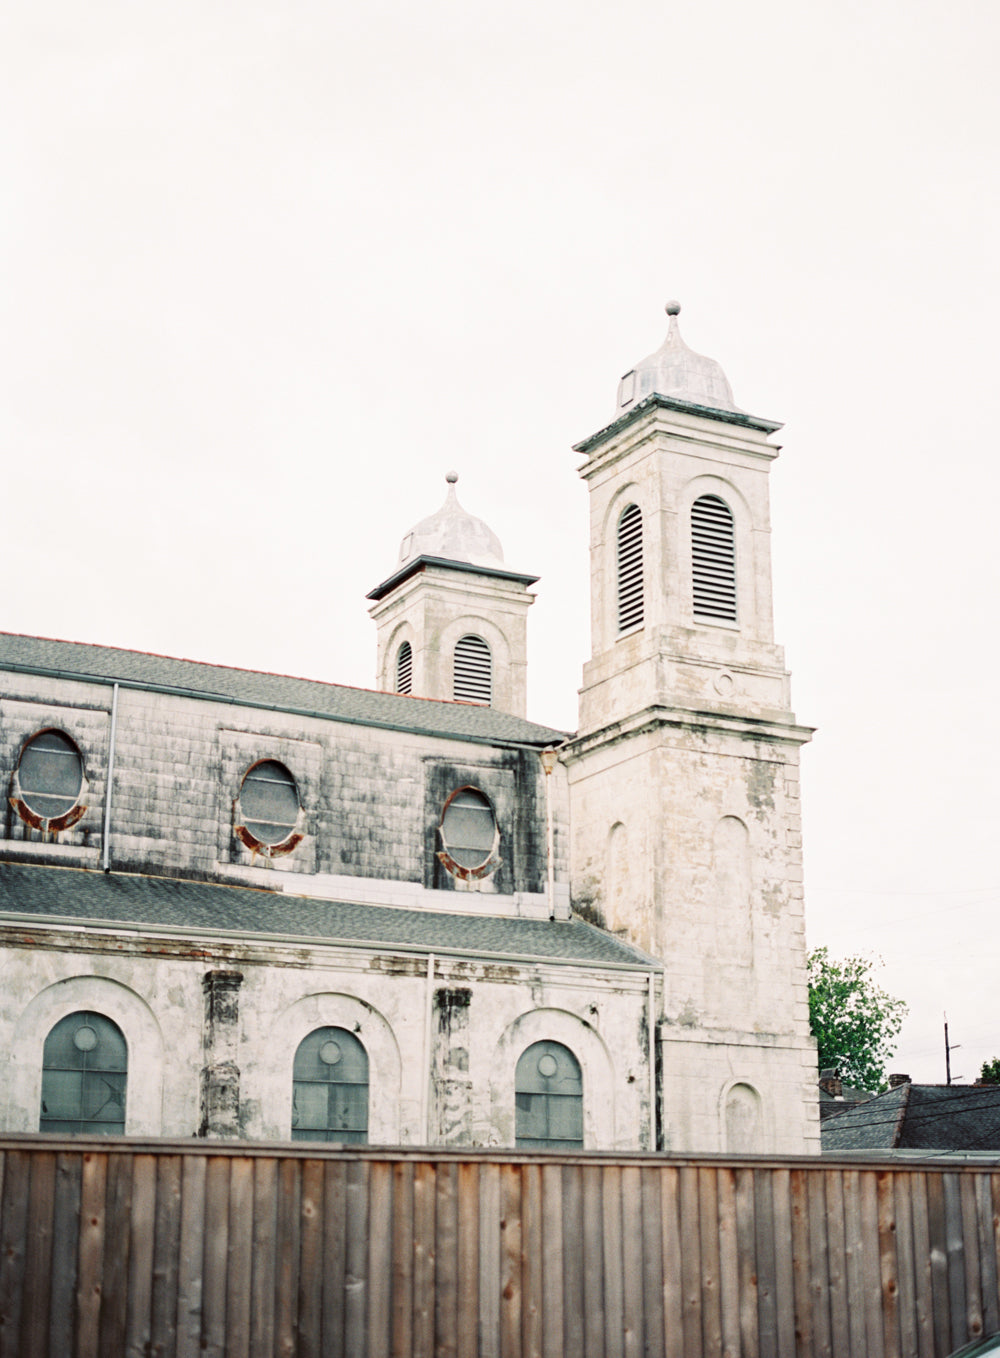 Bywater Church